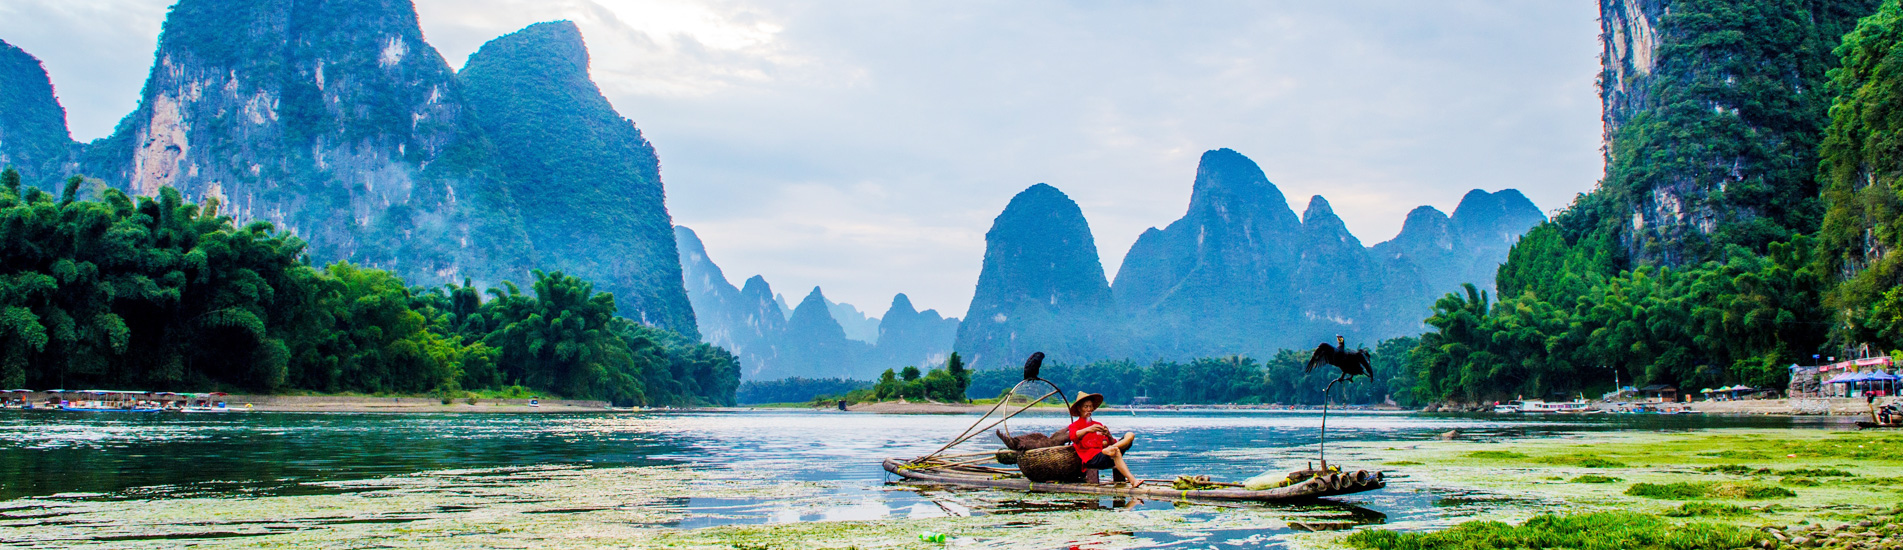 the Li River and the fisherman